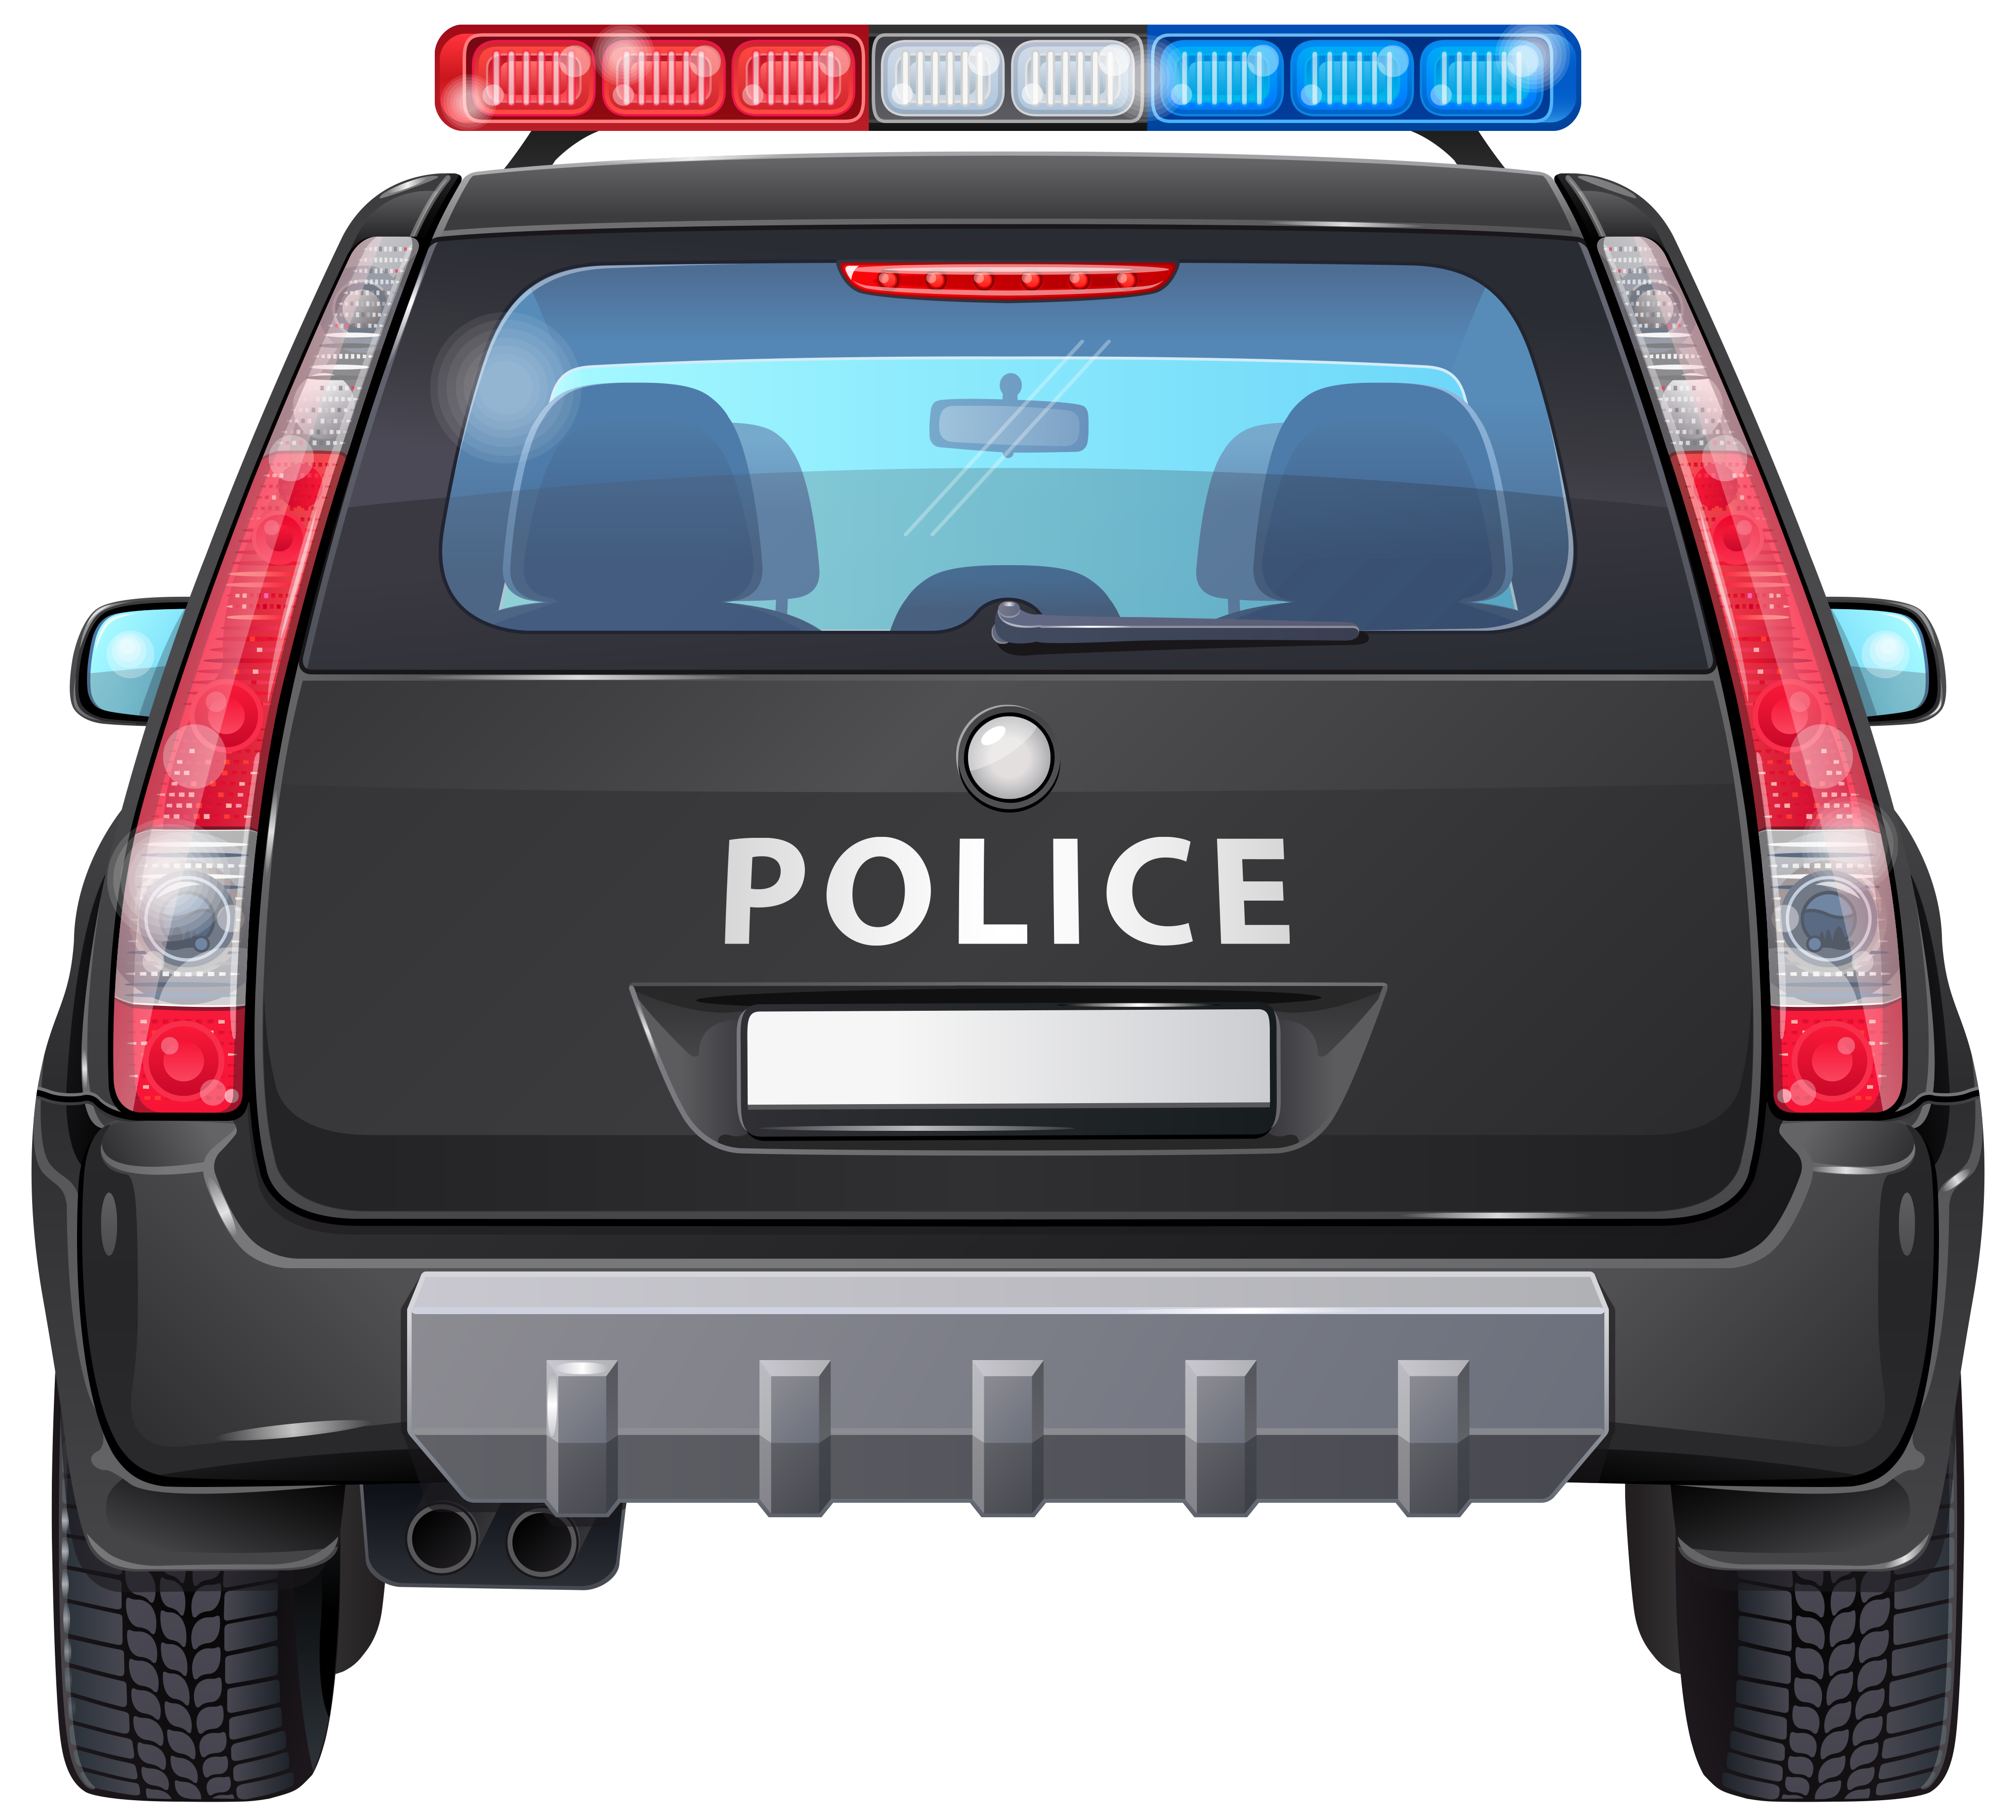 Police car back png. Clipart cars transparent background